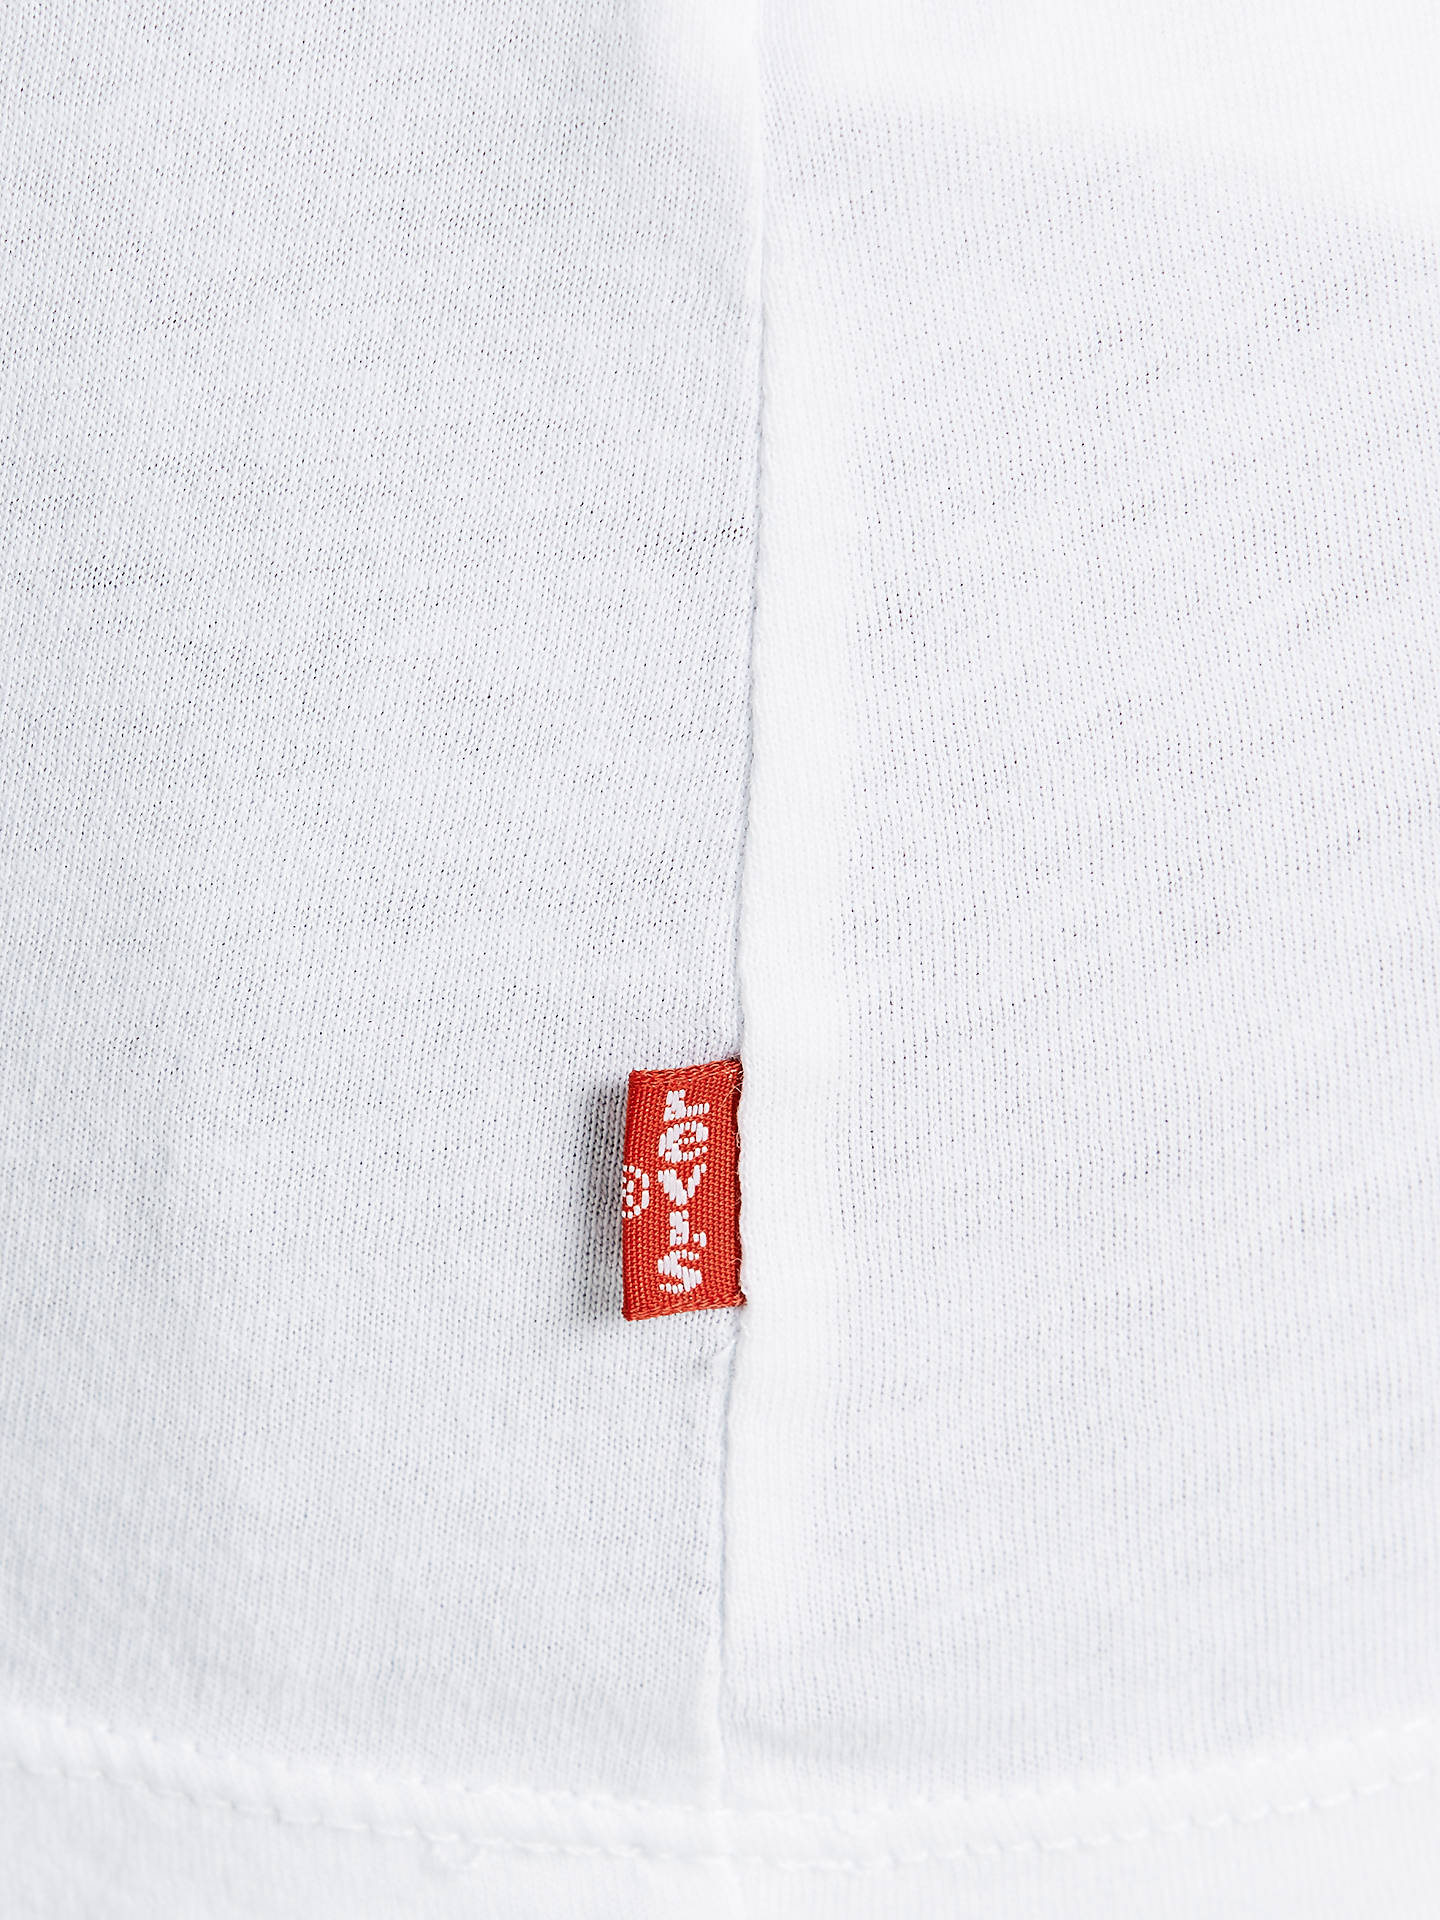 BuyLevi's The Perfect Logo T-Shirt, White, XS Online at johnlewis.com